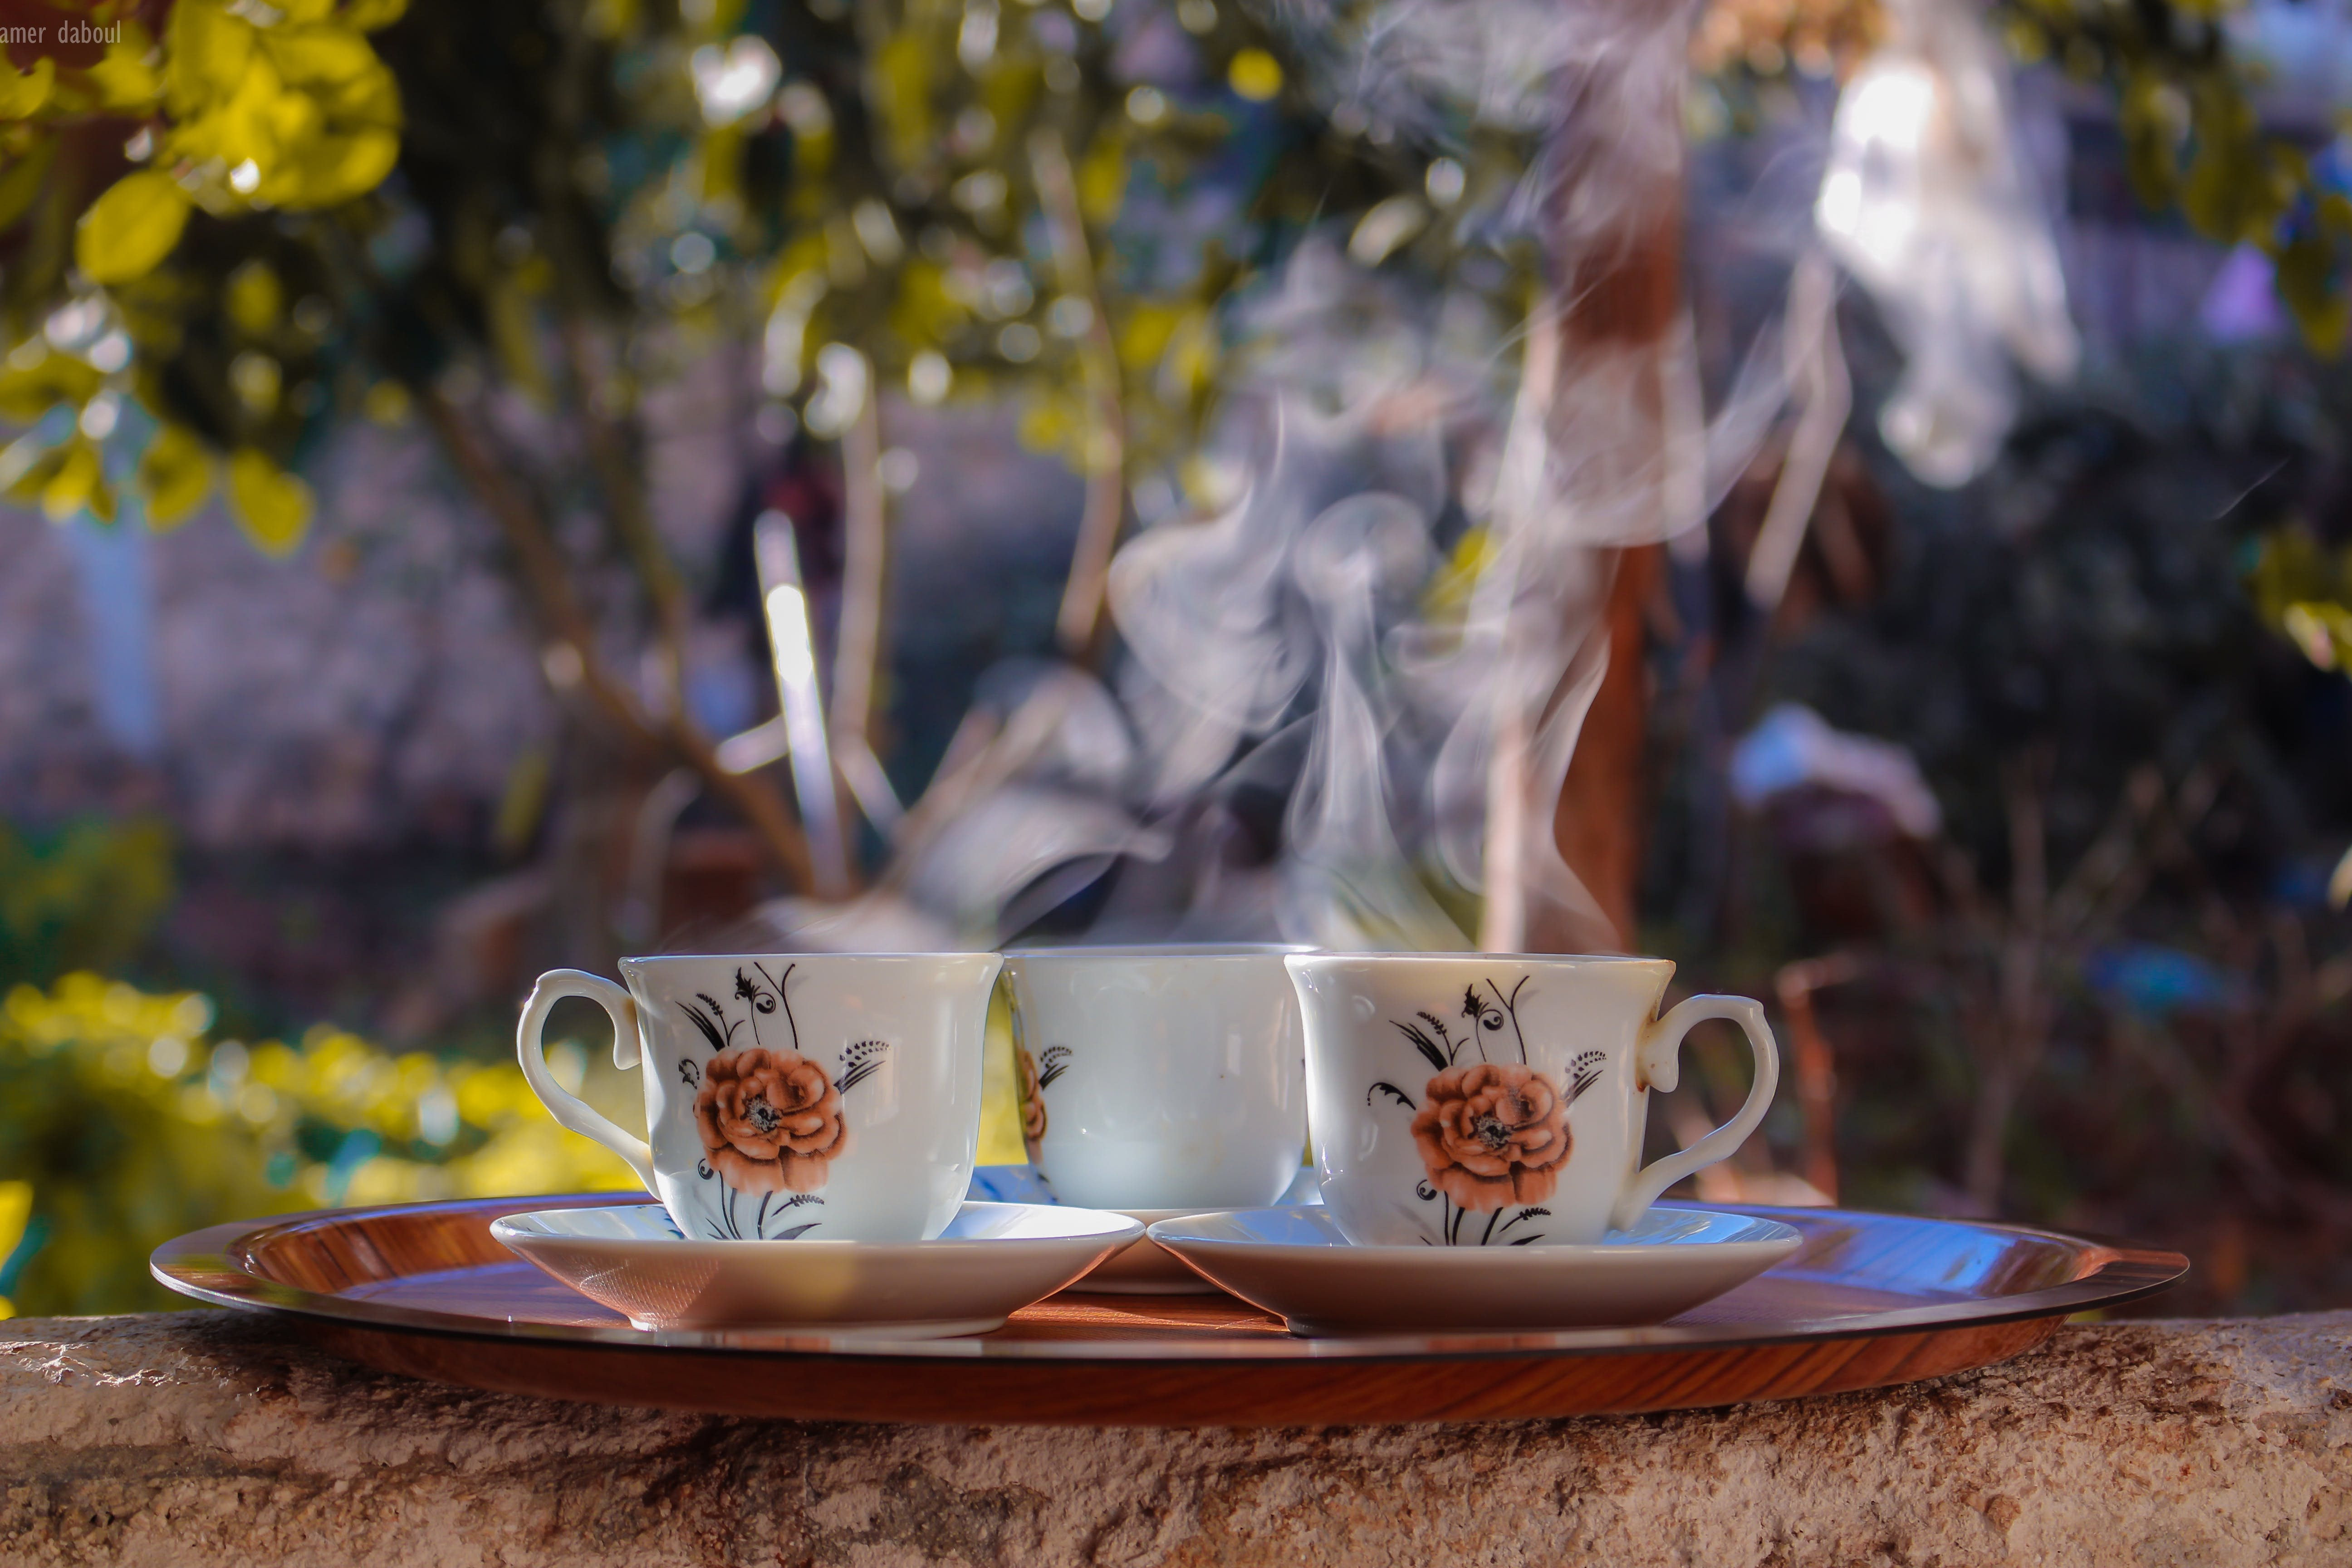 Three teacups in outdoor setting